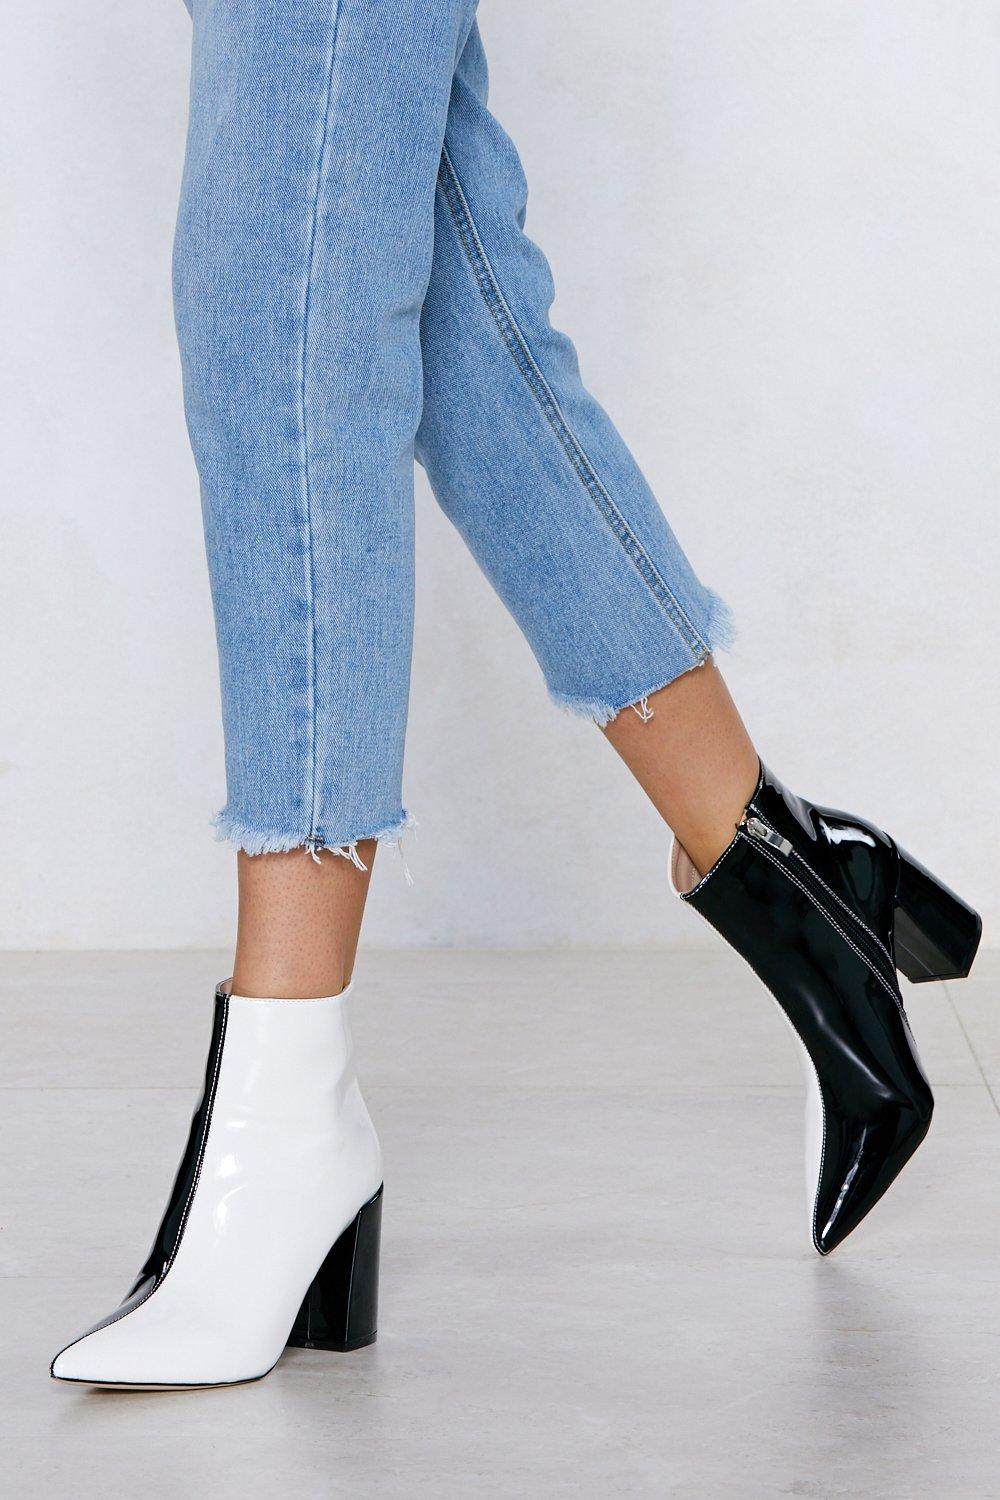 1960s Style Clothing & 60s Fashion Womens Two Tone Pointed Toe Heeled Boots - Black - 10 $38.50 AT vintagedancer.com